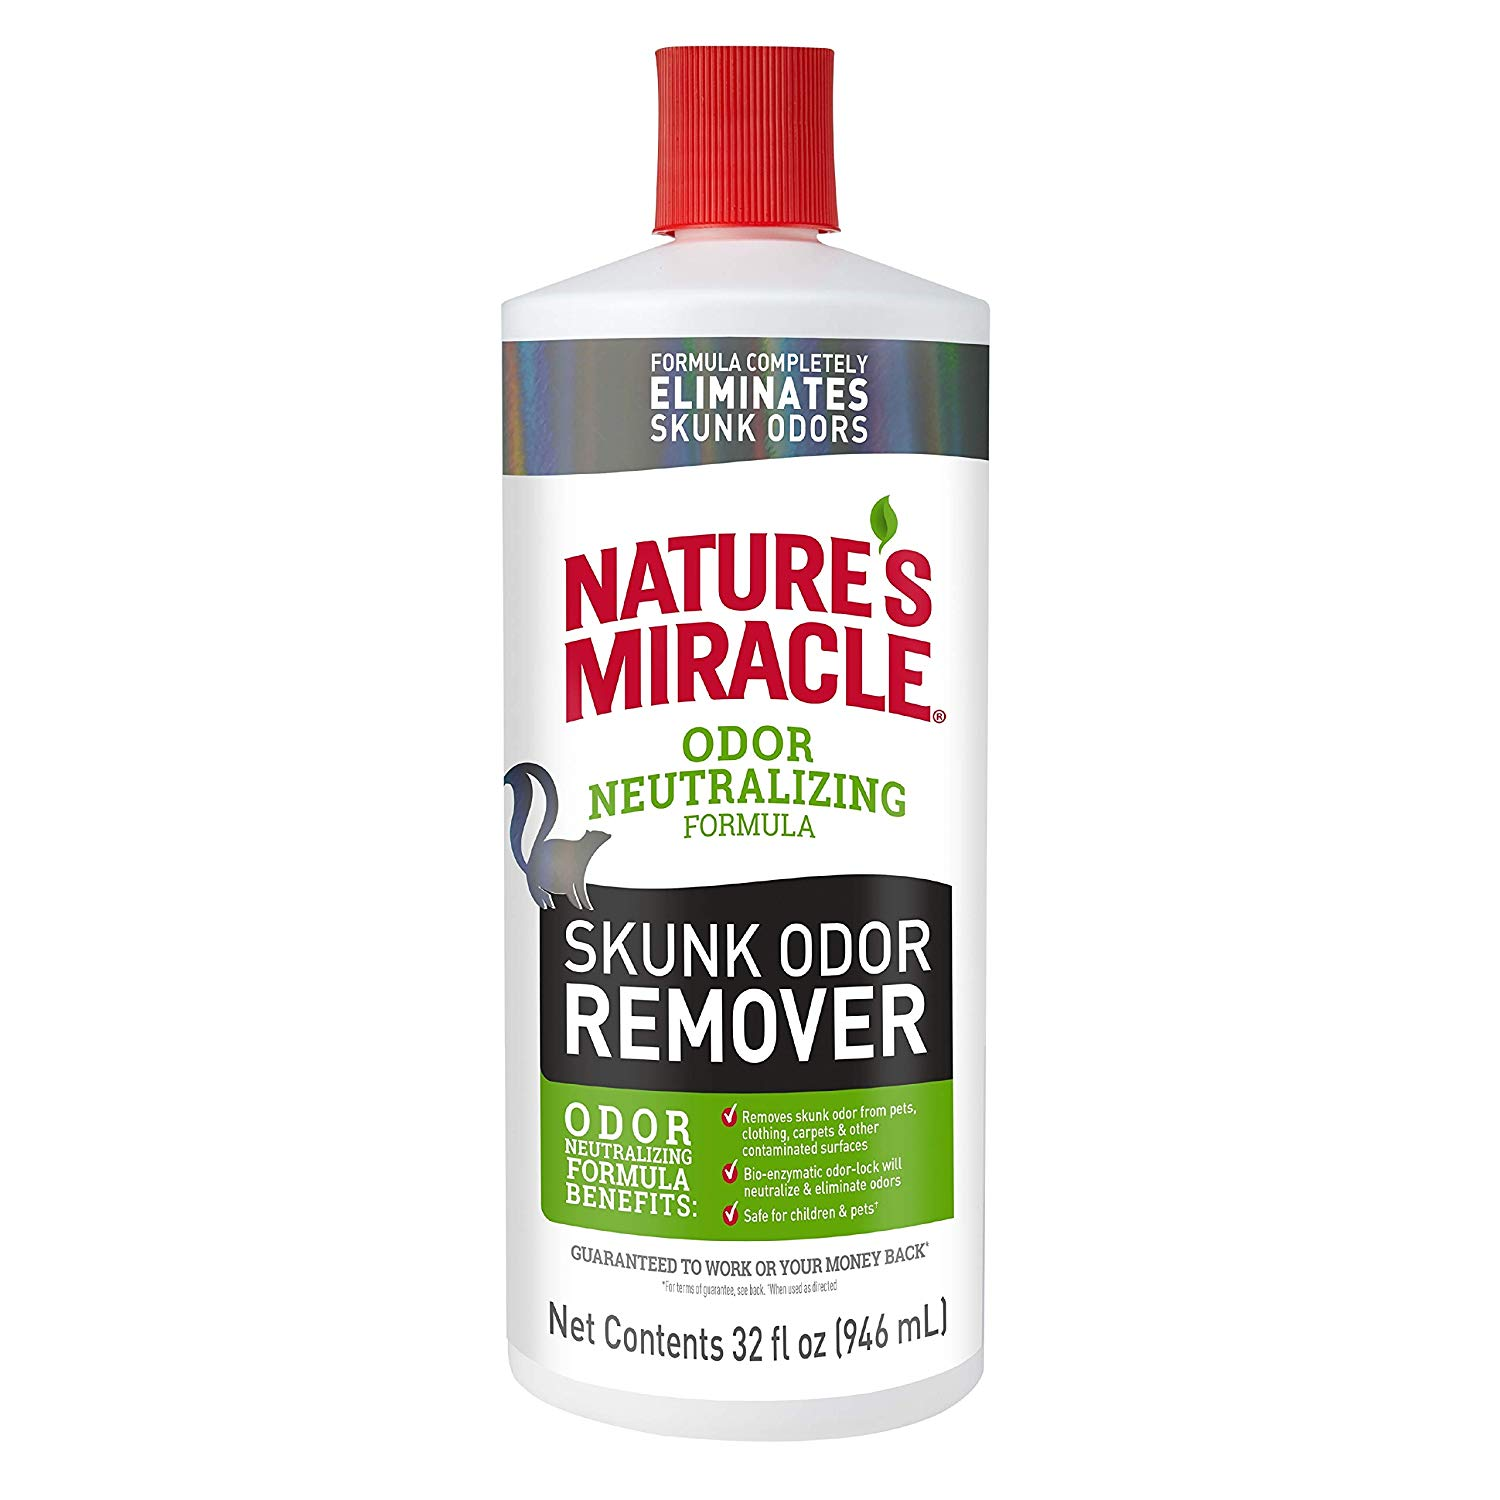 Nature's Miracle Skunk Odor Remover, 32 oz pour